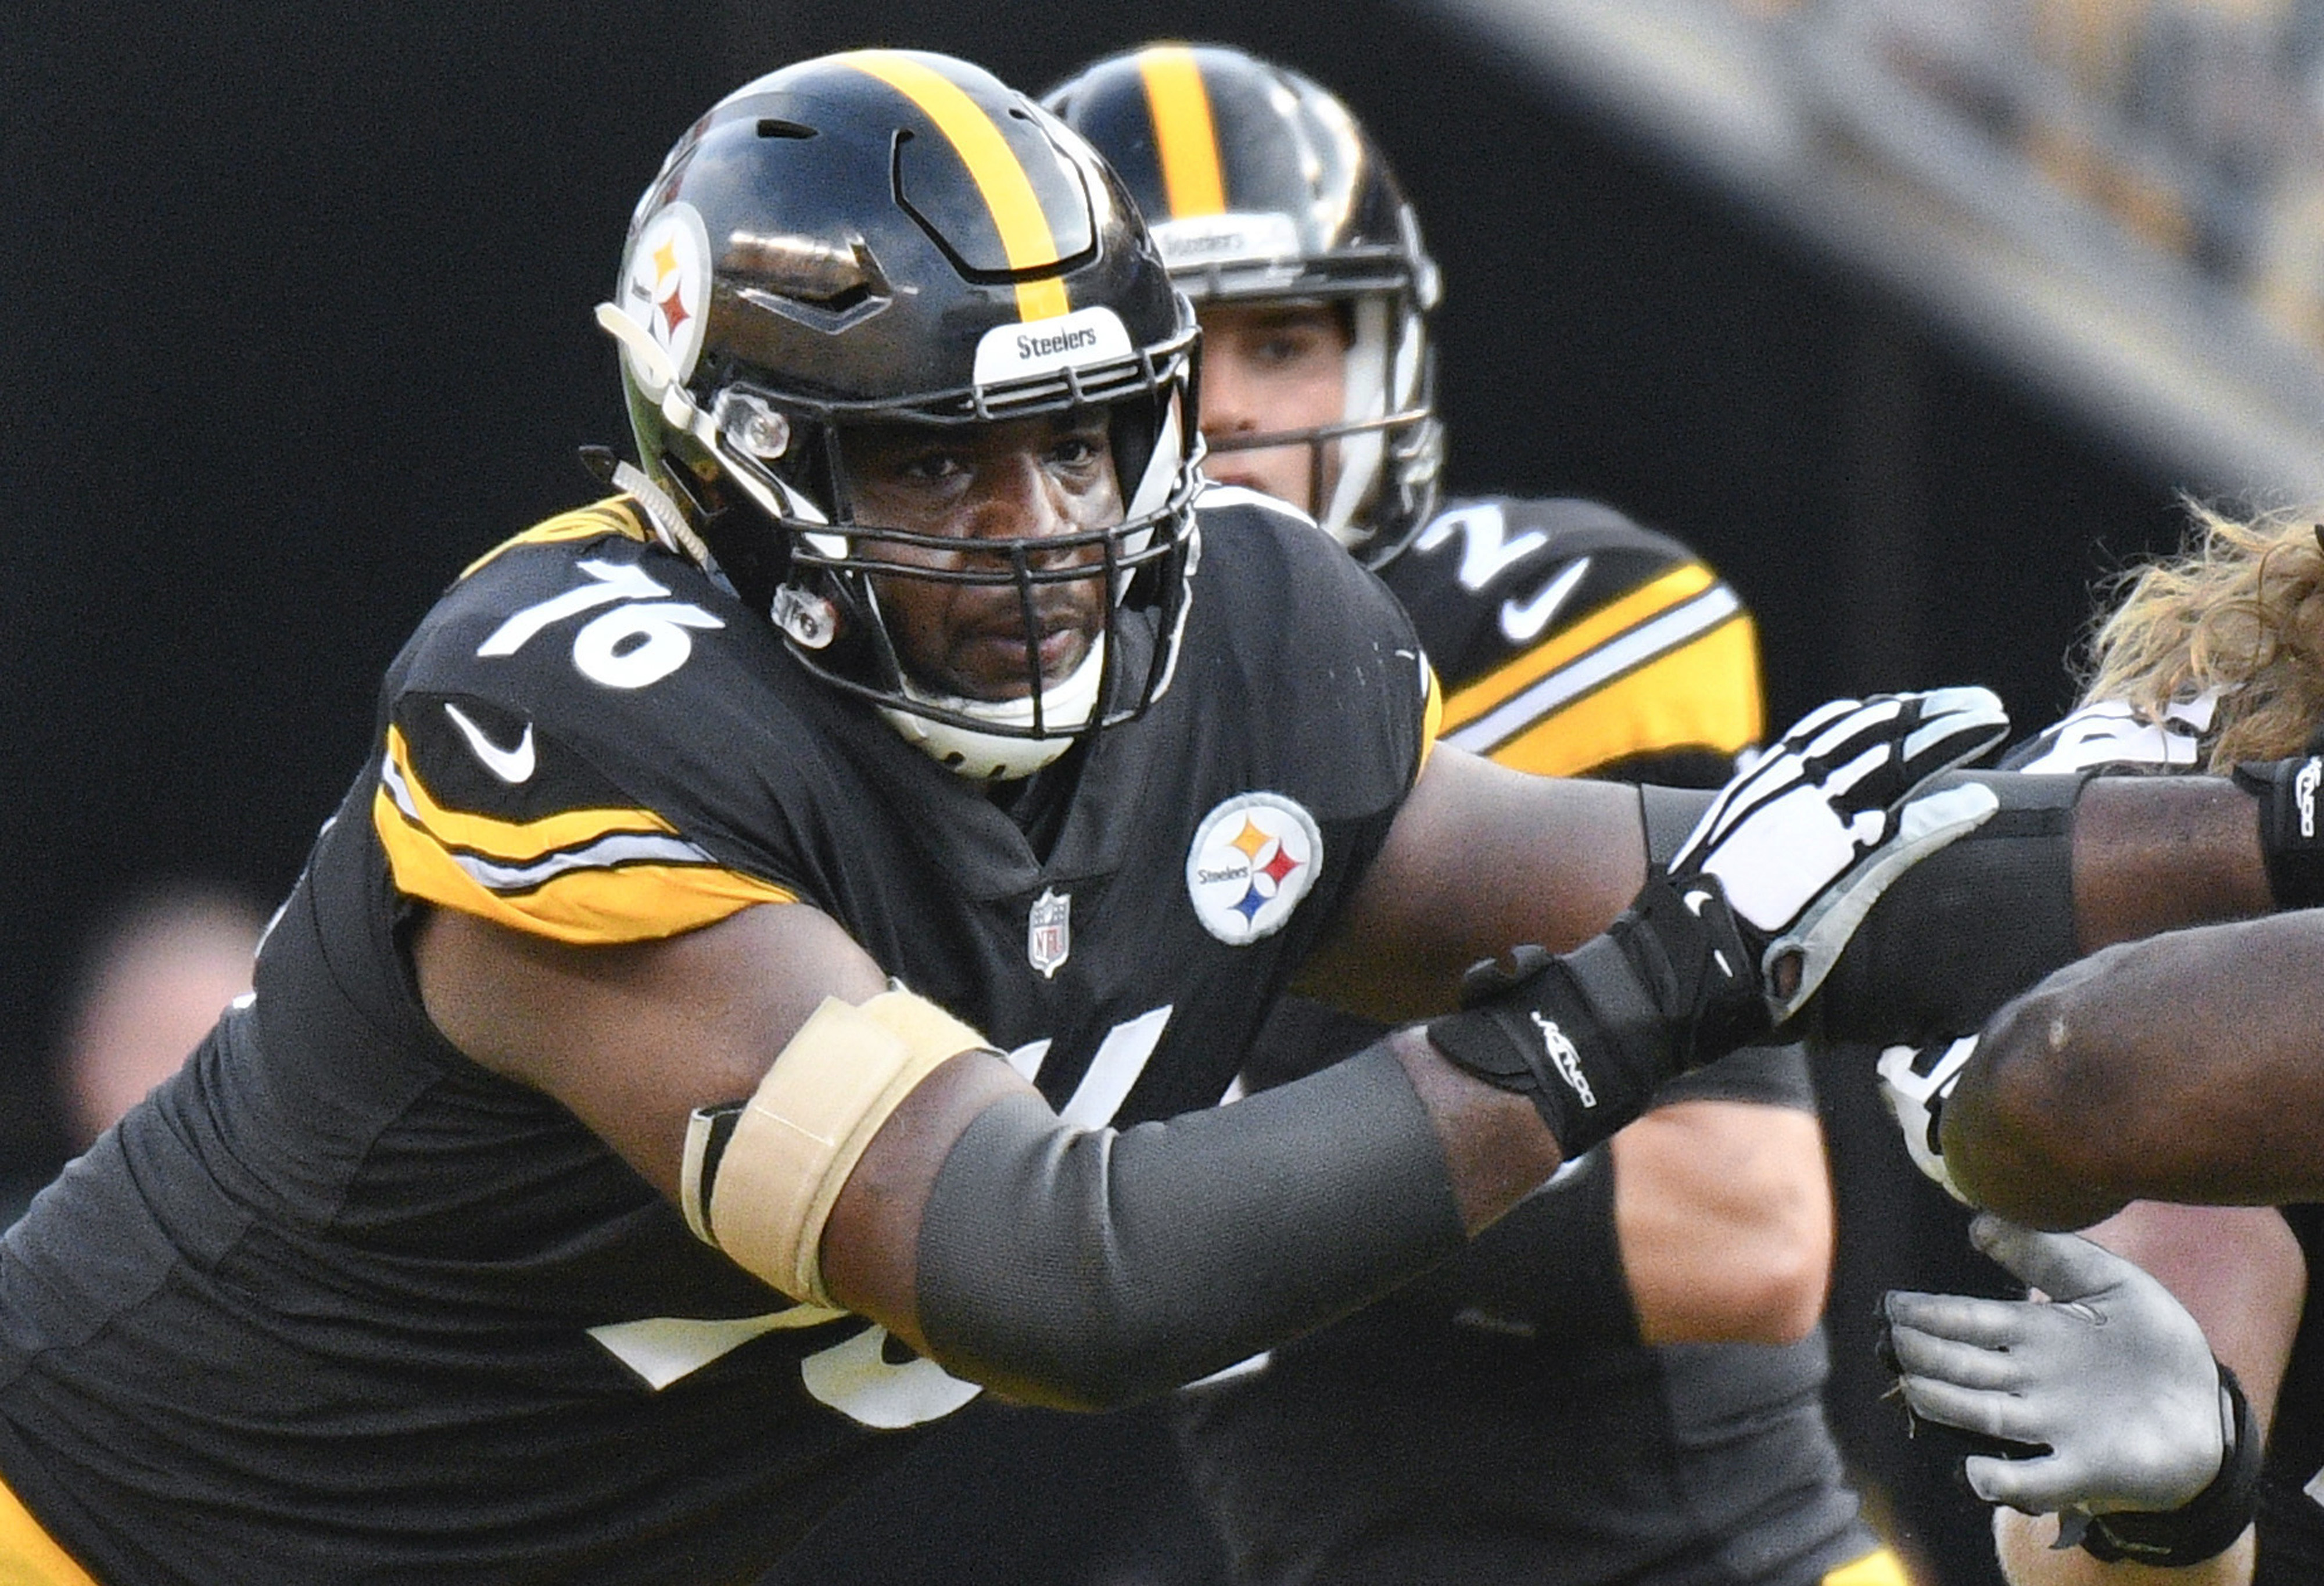 Steelers rookie Okorafor ready to fill in if necessary